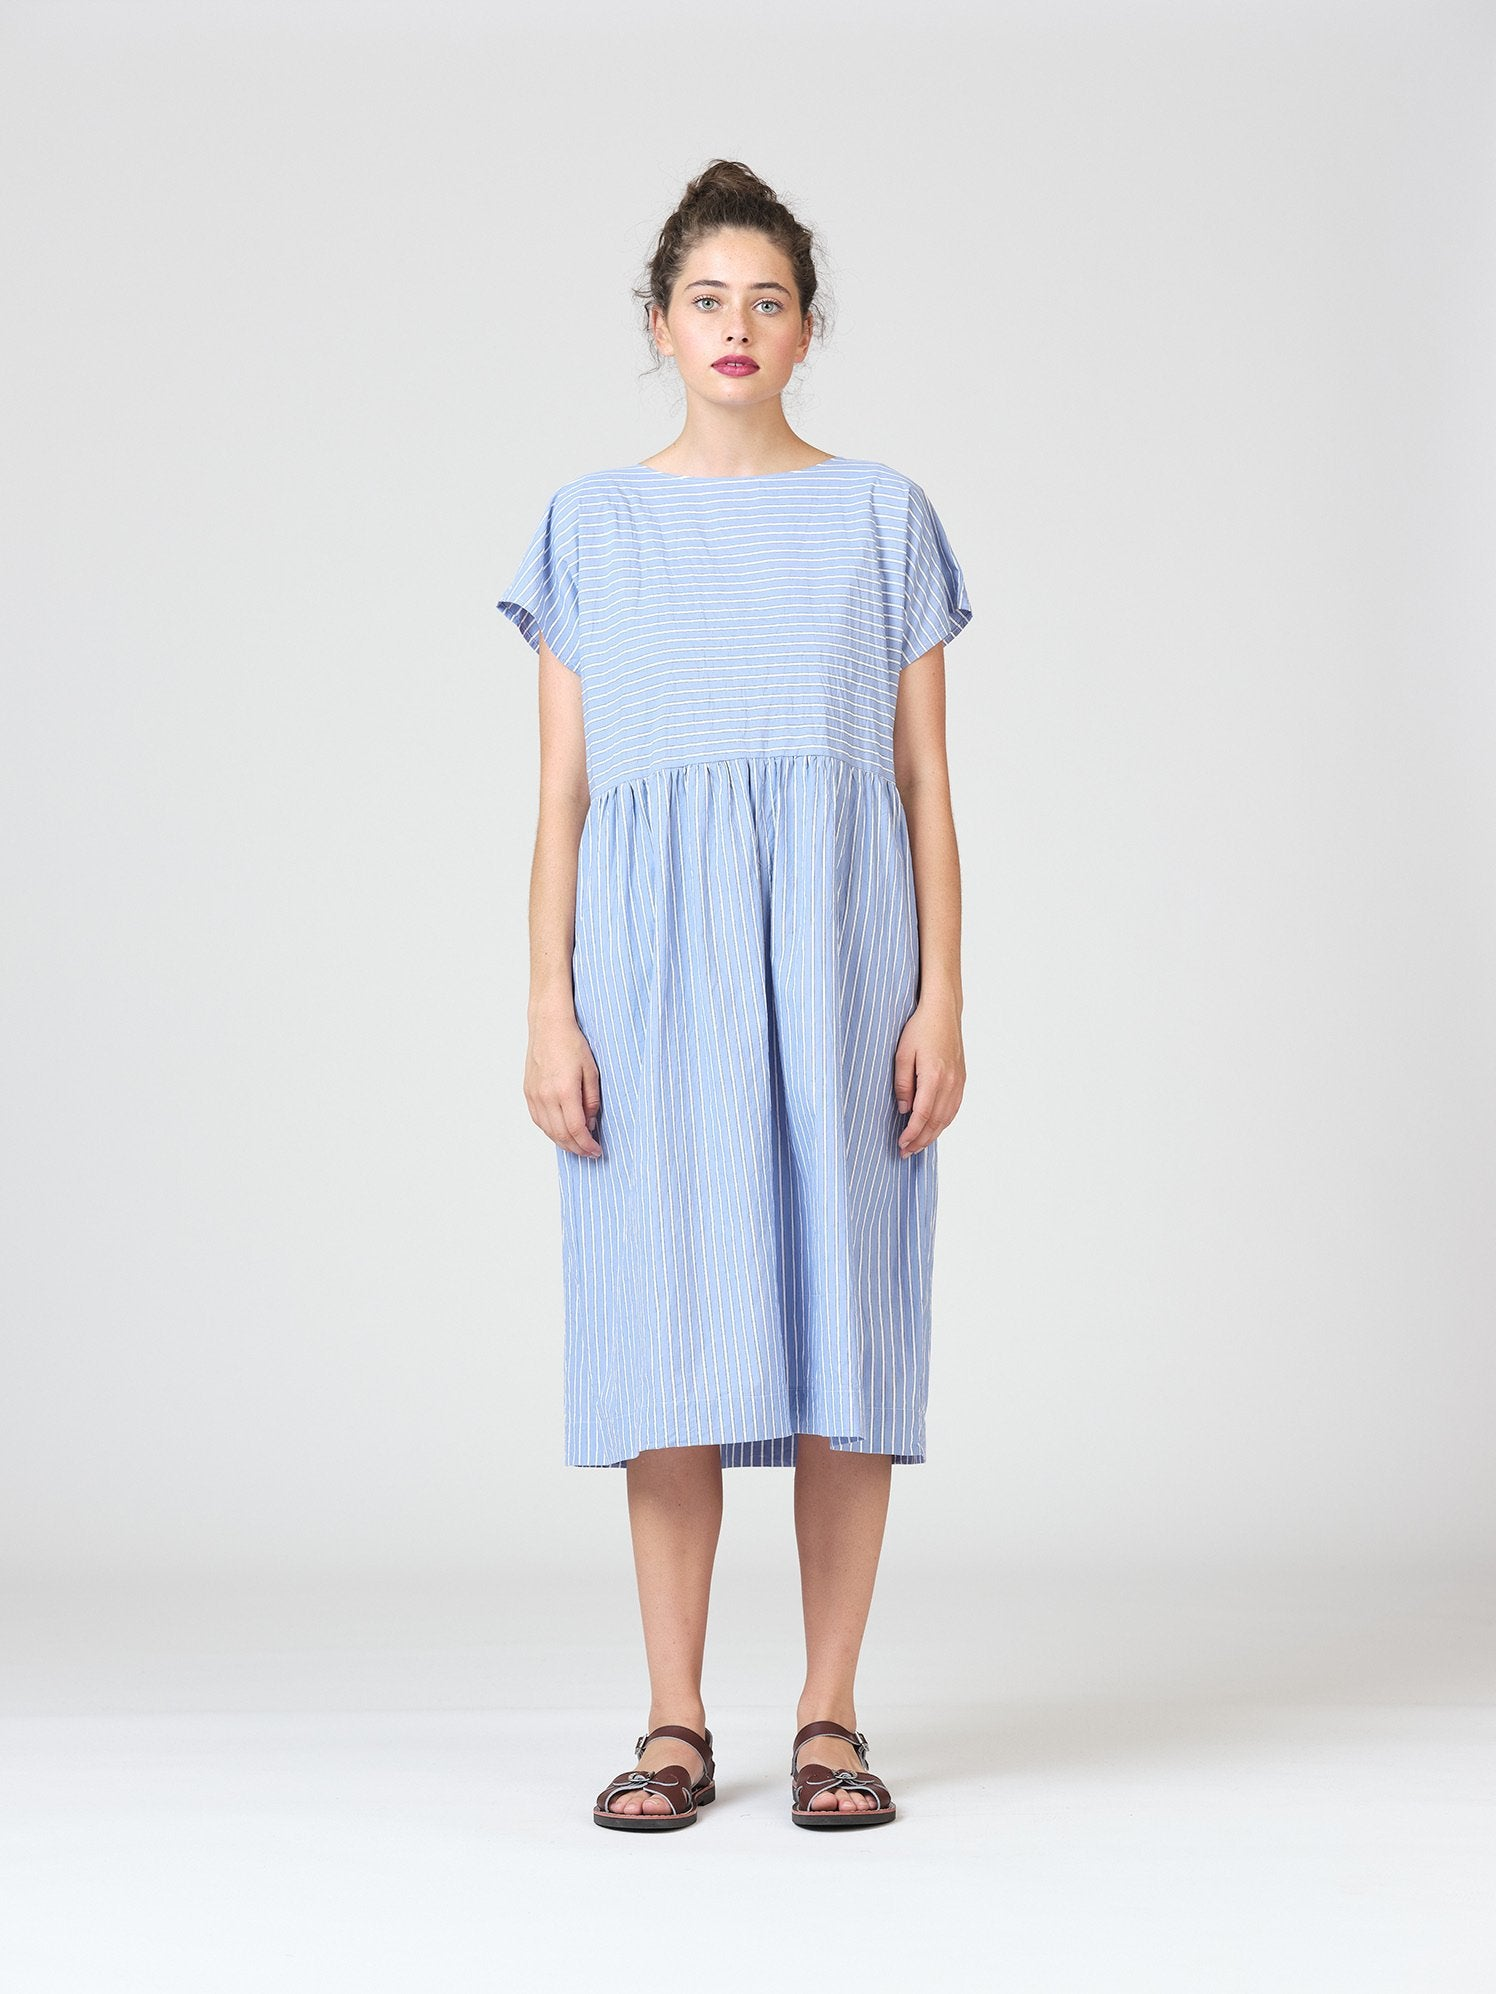 Widdess Captain Dress - Paris